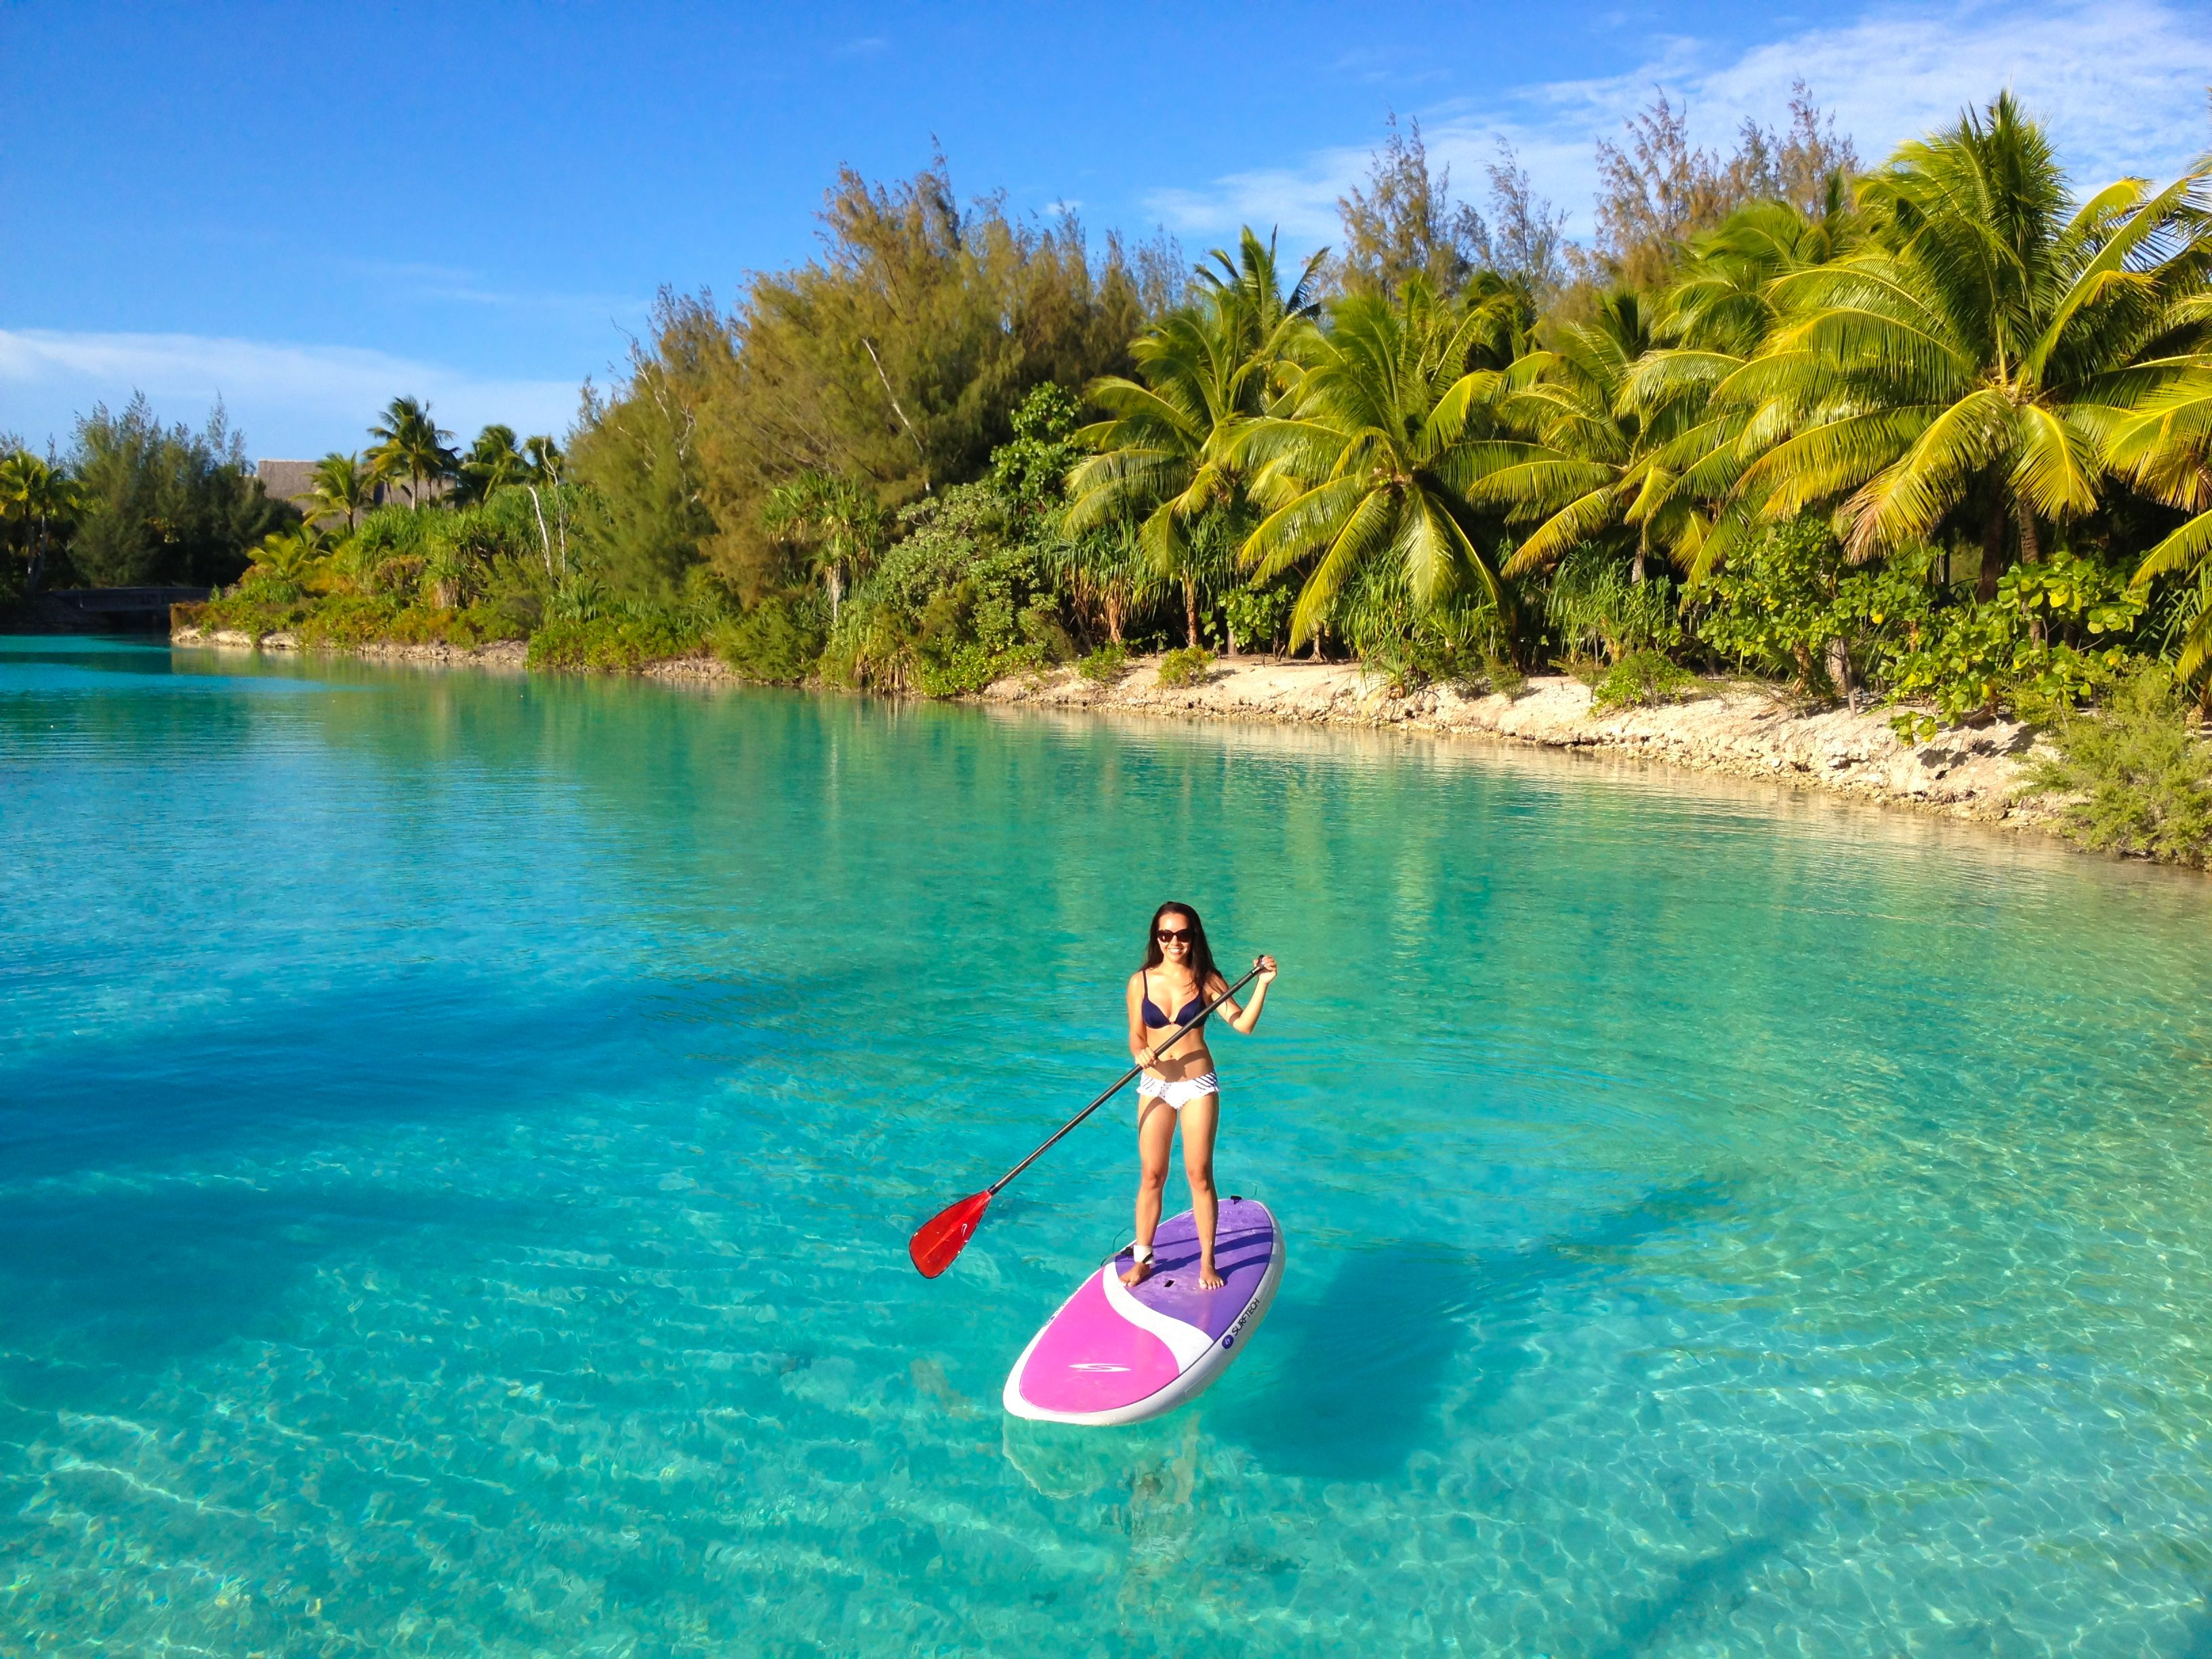 Paddle boarding in bora bora four seasons resort for What to buy in bora bora